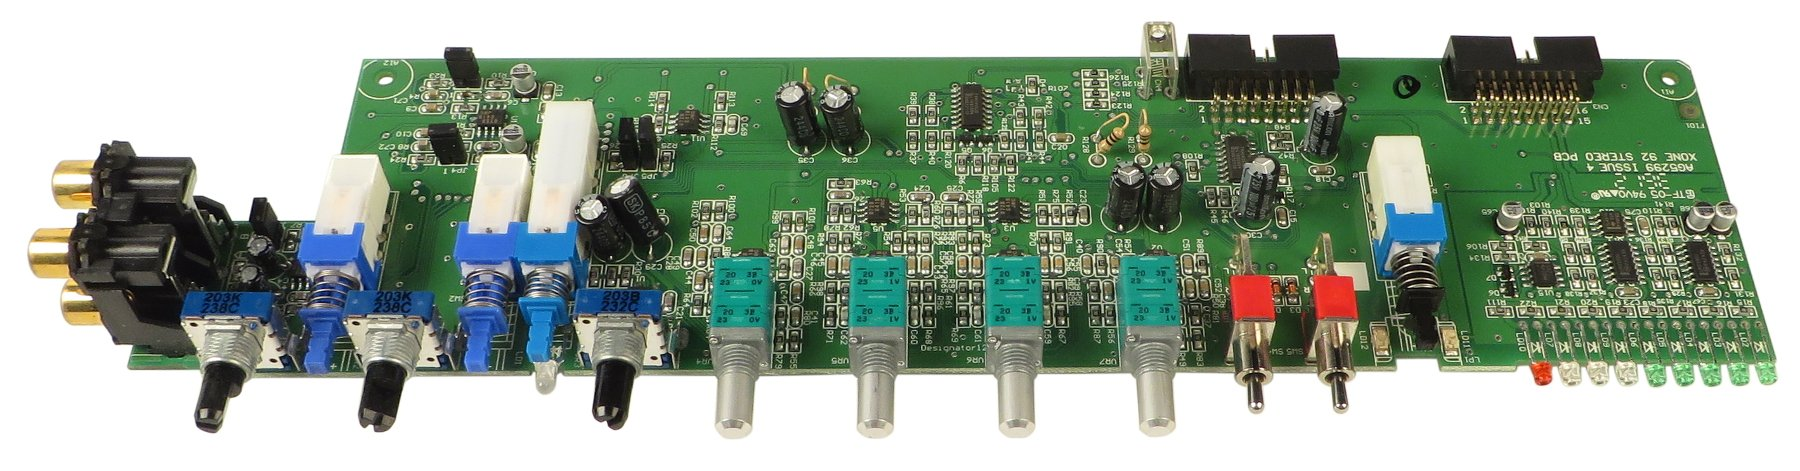 Stereo 1 PCB Assembly for XONE92